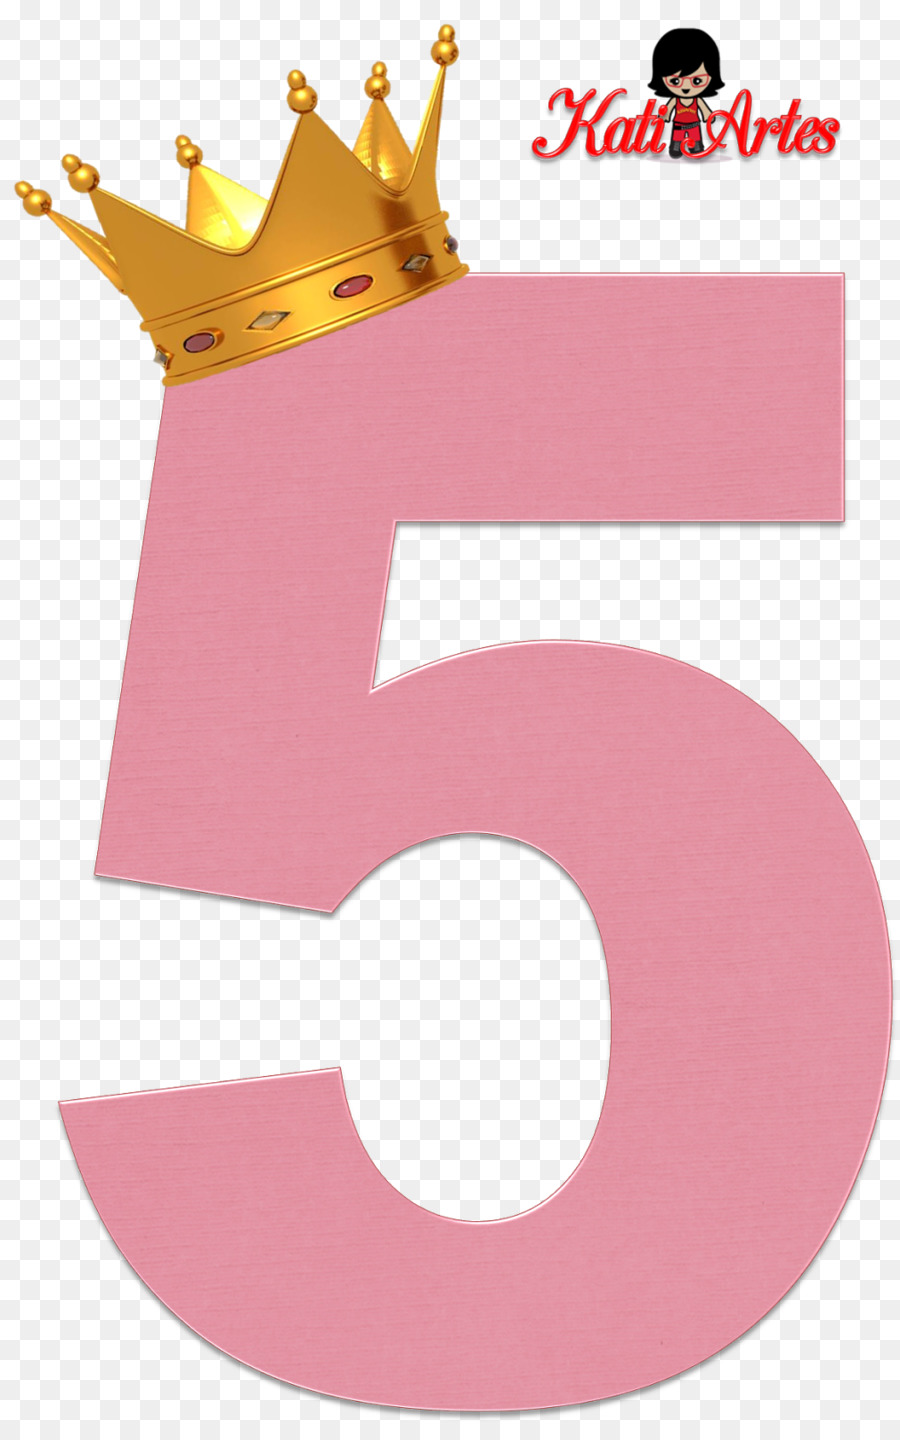 5 clipart pink clip art royalty free Crown Logo clipart - Crown, Number, Pink, transparent clip art clip art royalty free